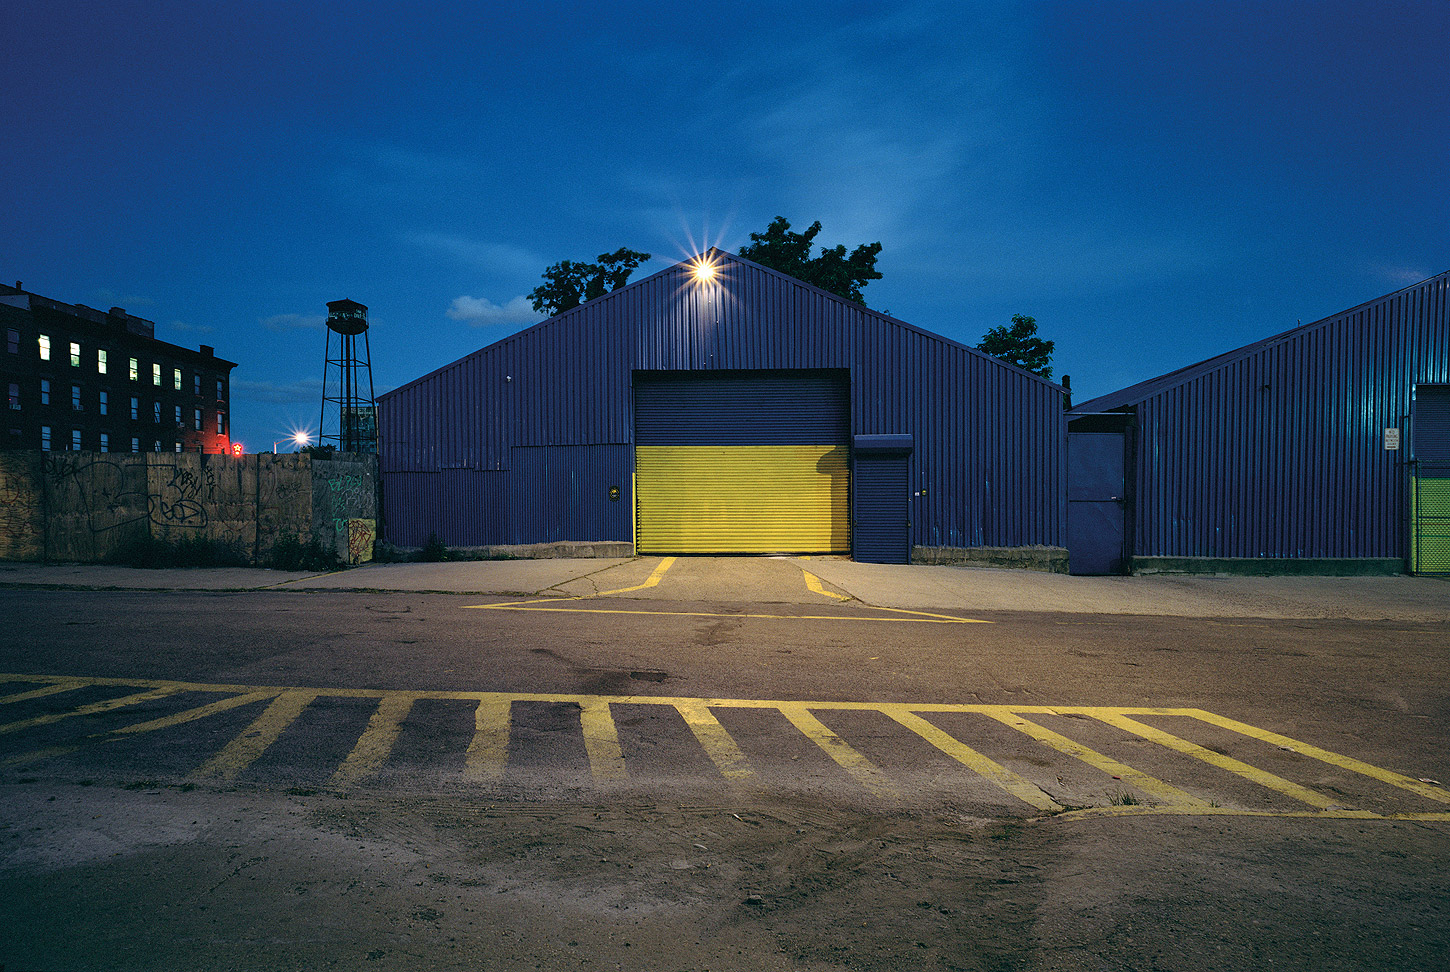 11. Warehouse, Greenpoint, Brooklyn, New York, 2007